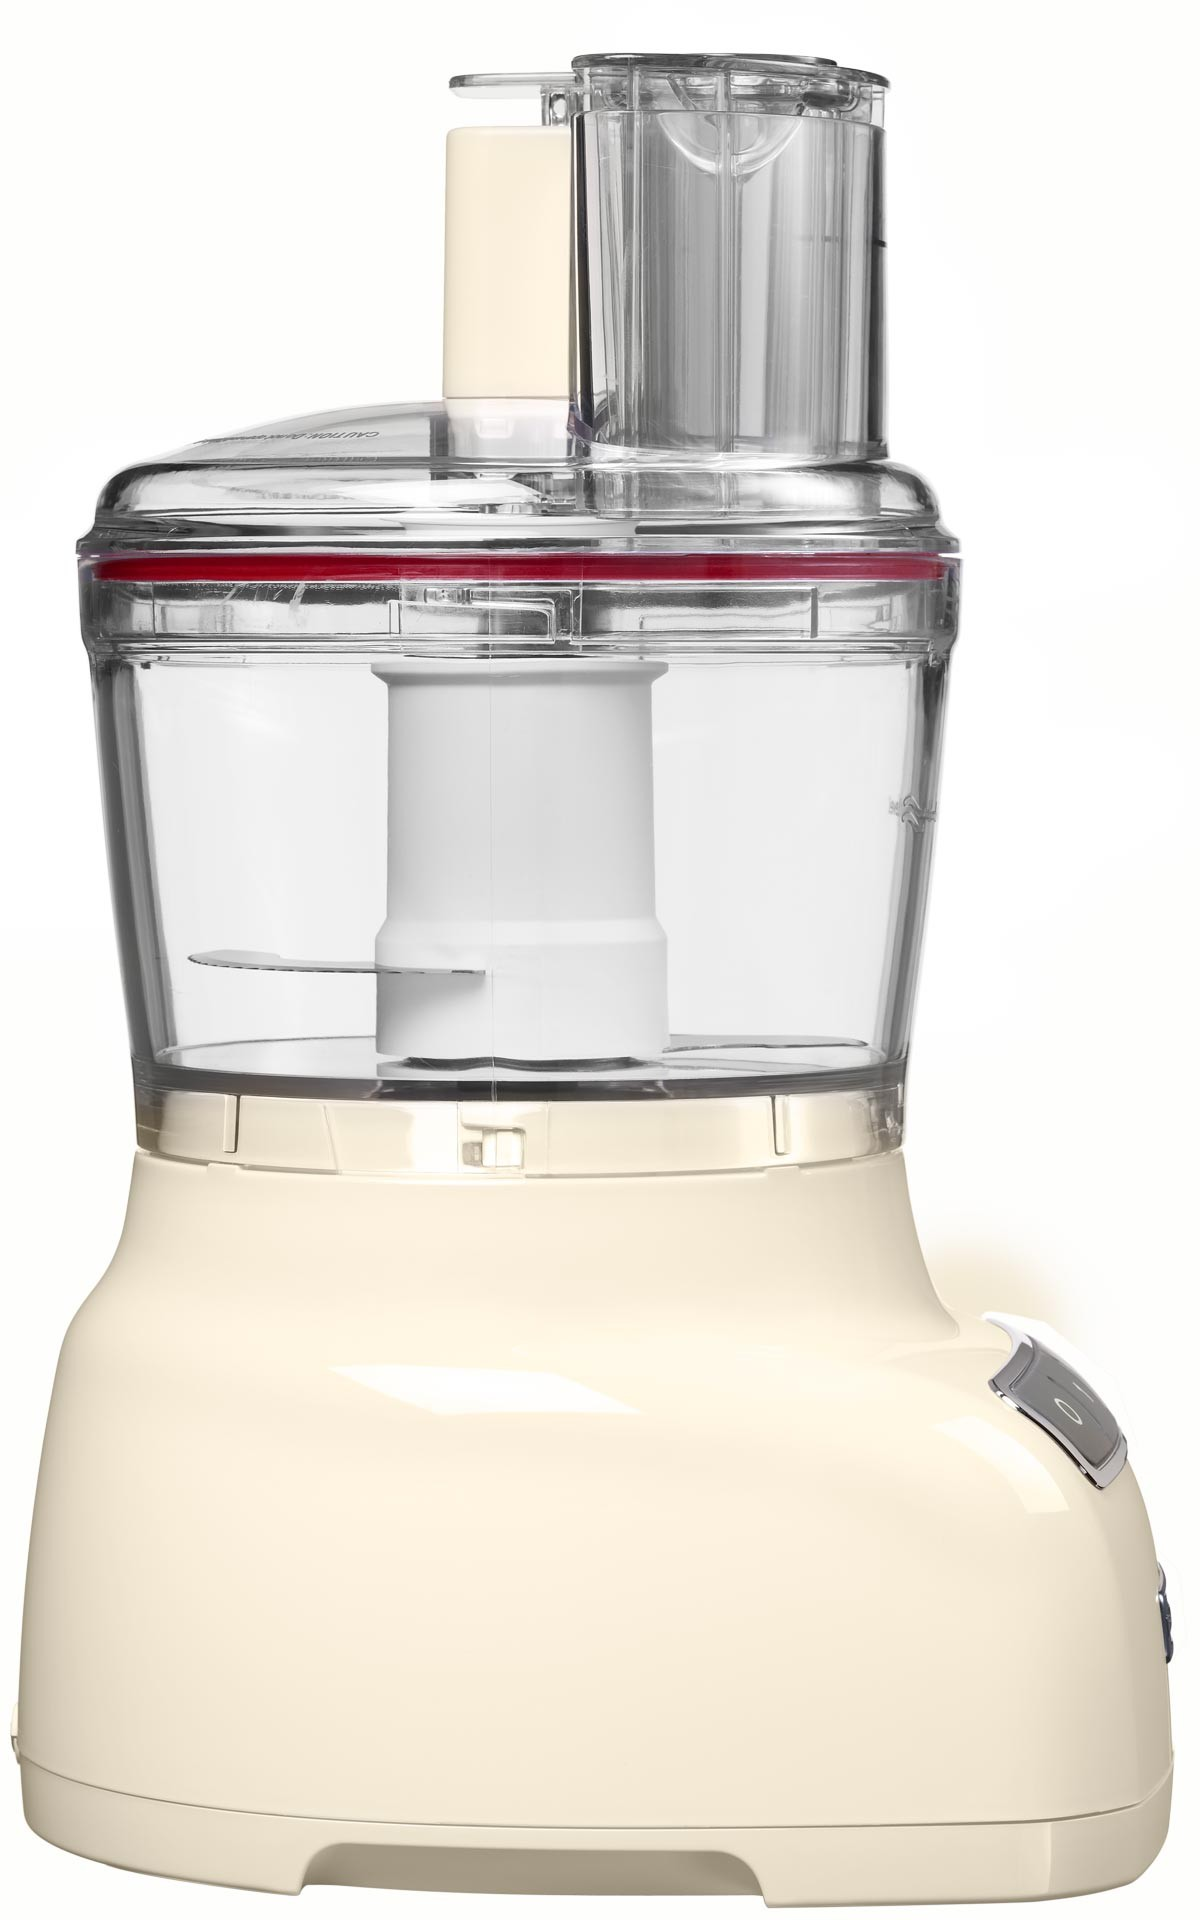 KITCHENAID - 5 KFP 0925 EAC